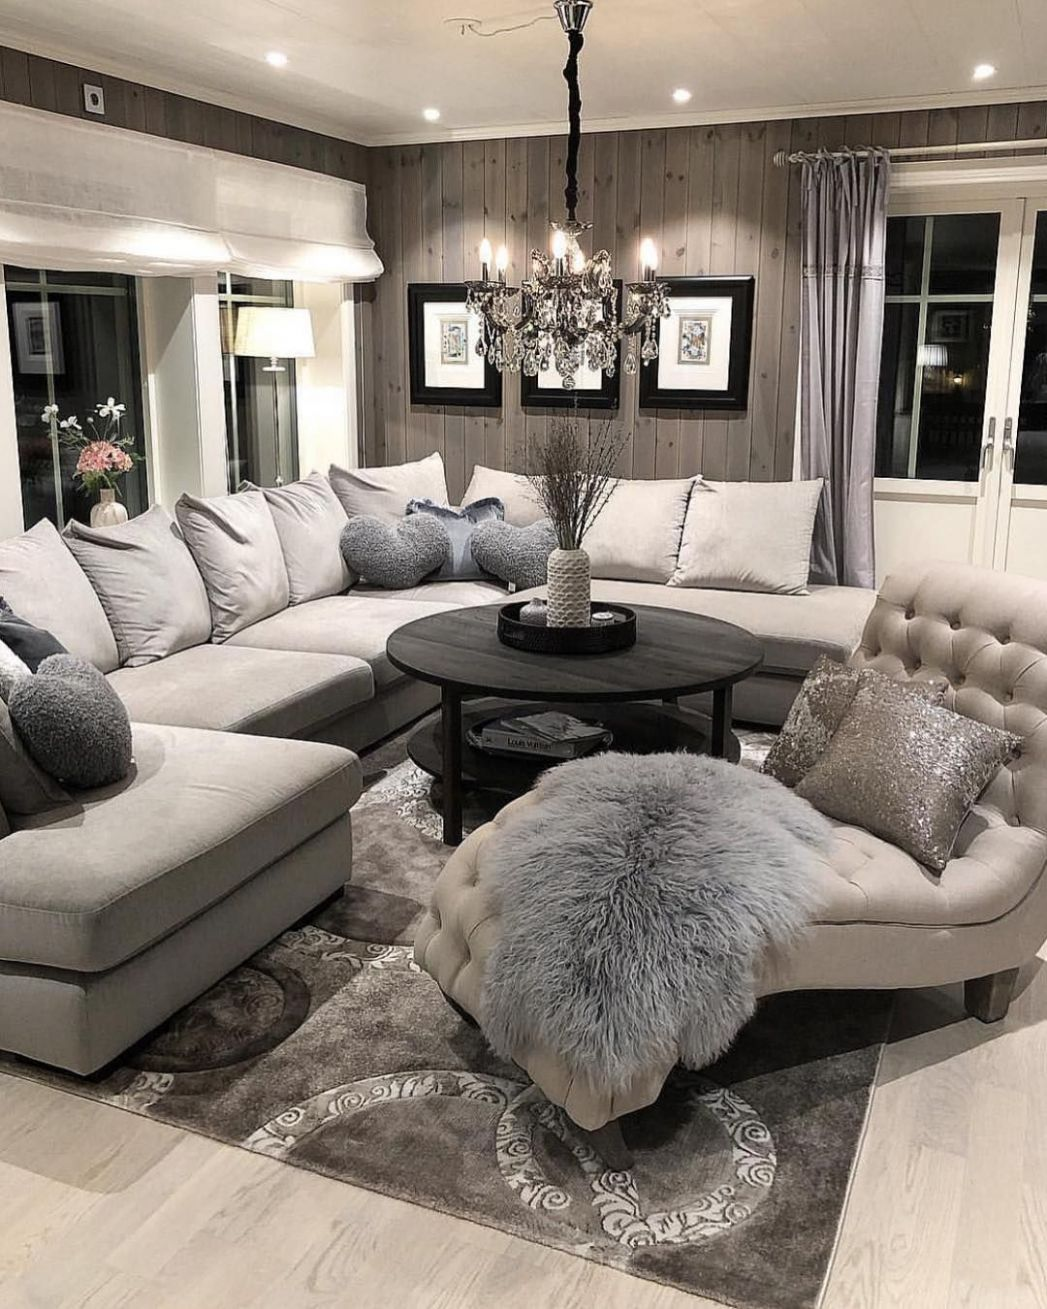 "Interior & Decor Inspiration on Instagram: ""Living room goals ..."